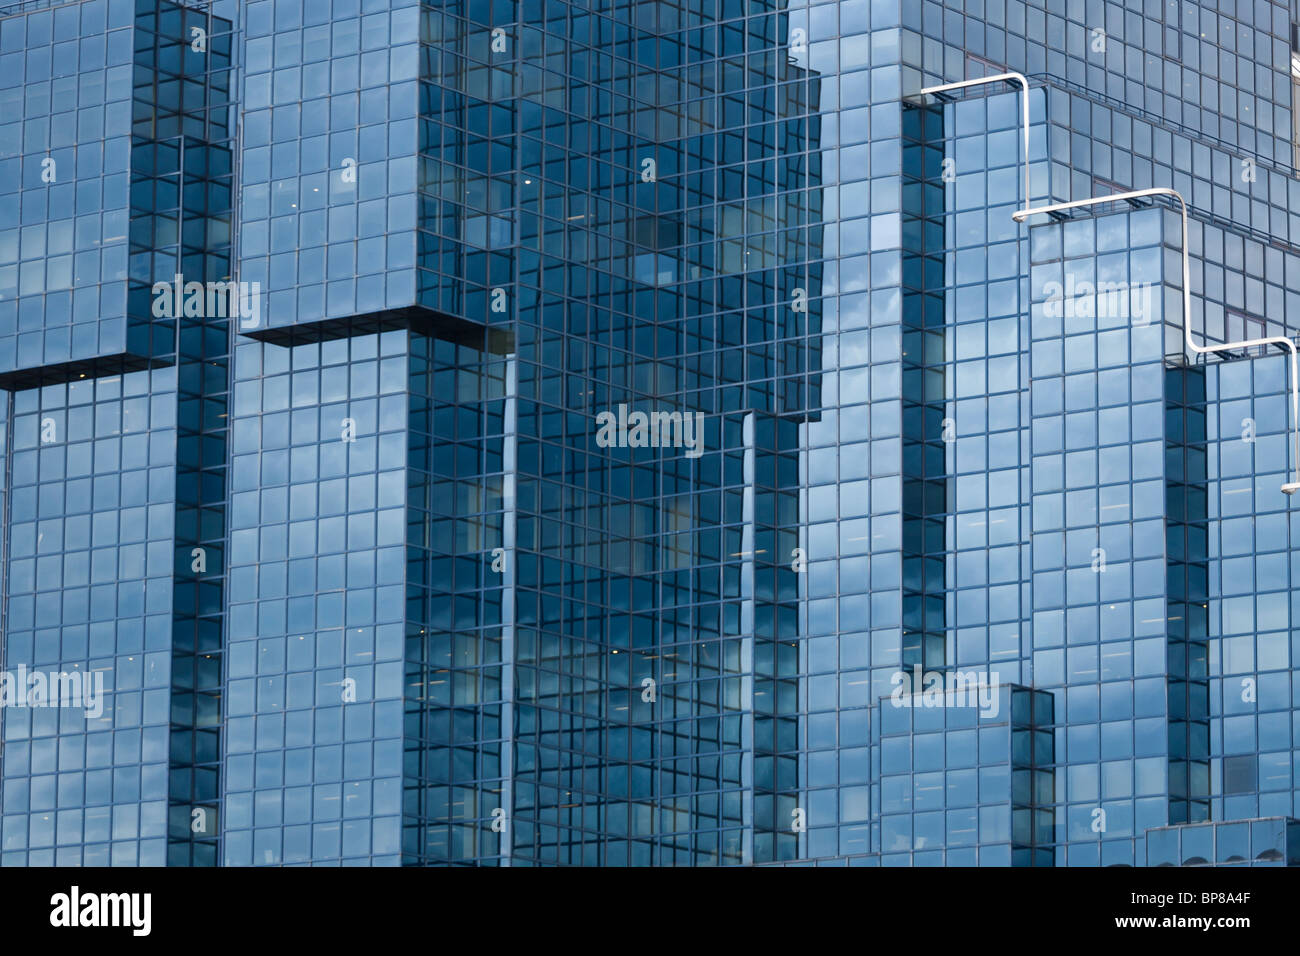 Glass towers of London. Blue reflective glass and a repetitive array of windows forms the facade of this massive - Stock Image